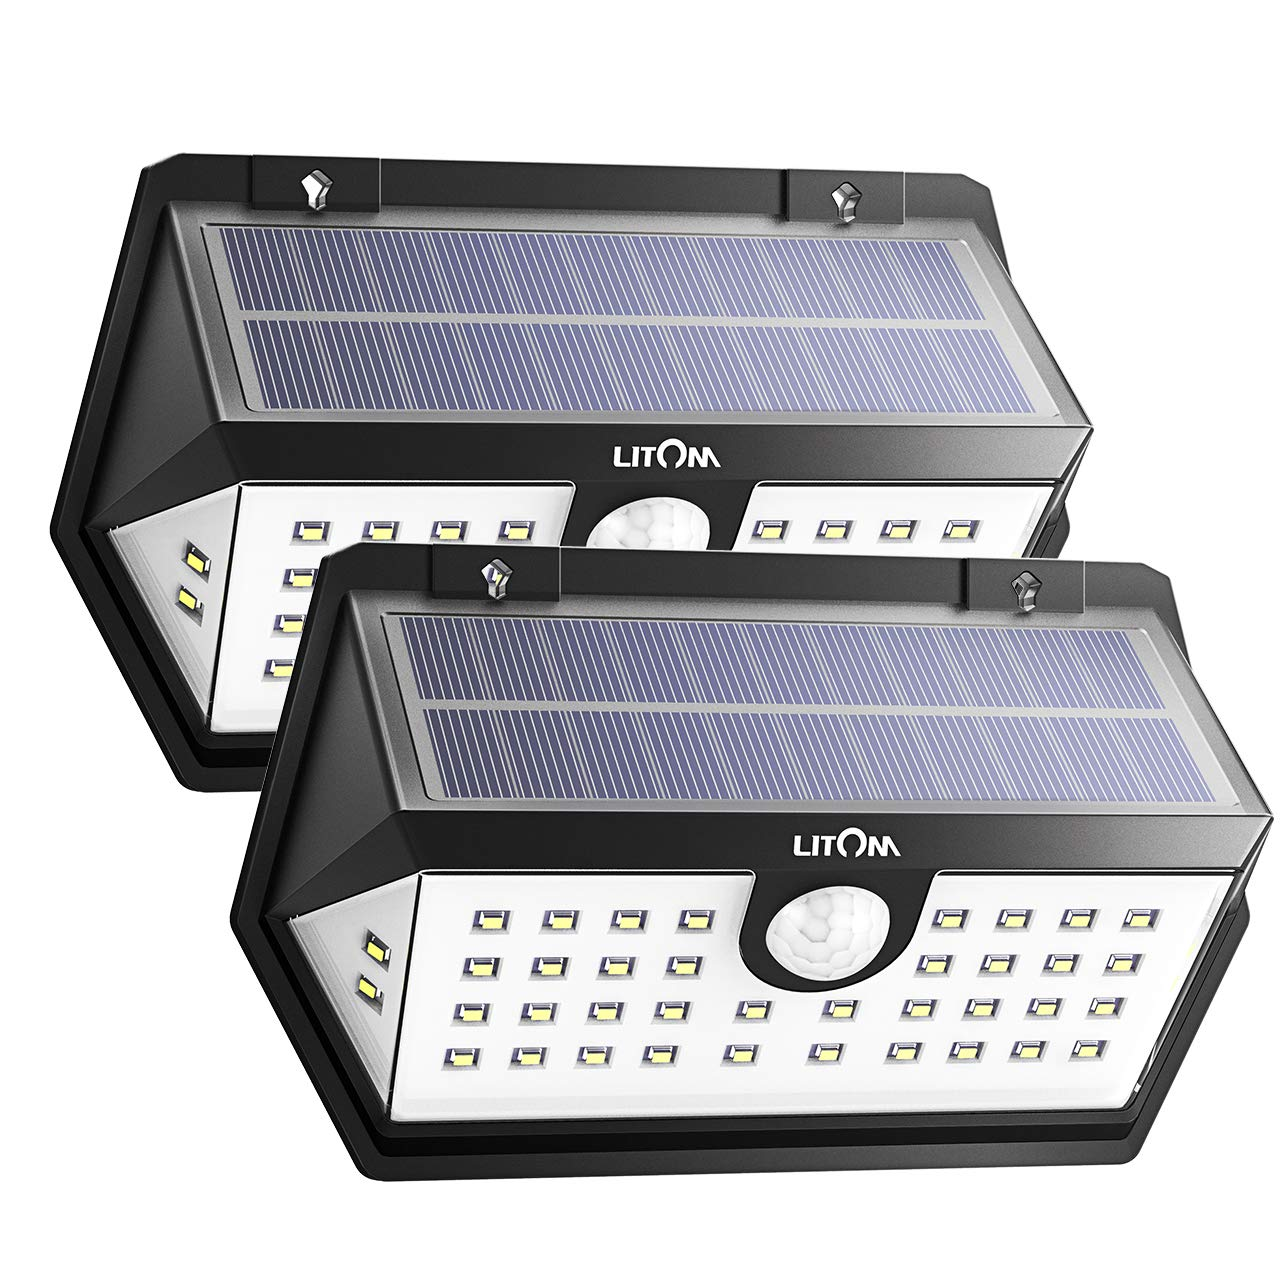 LITOM Solar Lights Outdoor, 40 LED Wireless Wide Angle Motion Sensor Light, IP65 Waterproof Security Solar Light, Three Working Modes for Front Door, Yard, Garage, Deck, Porch, Shed, Walkway (2 Pack) by Litom